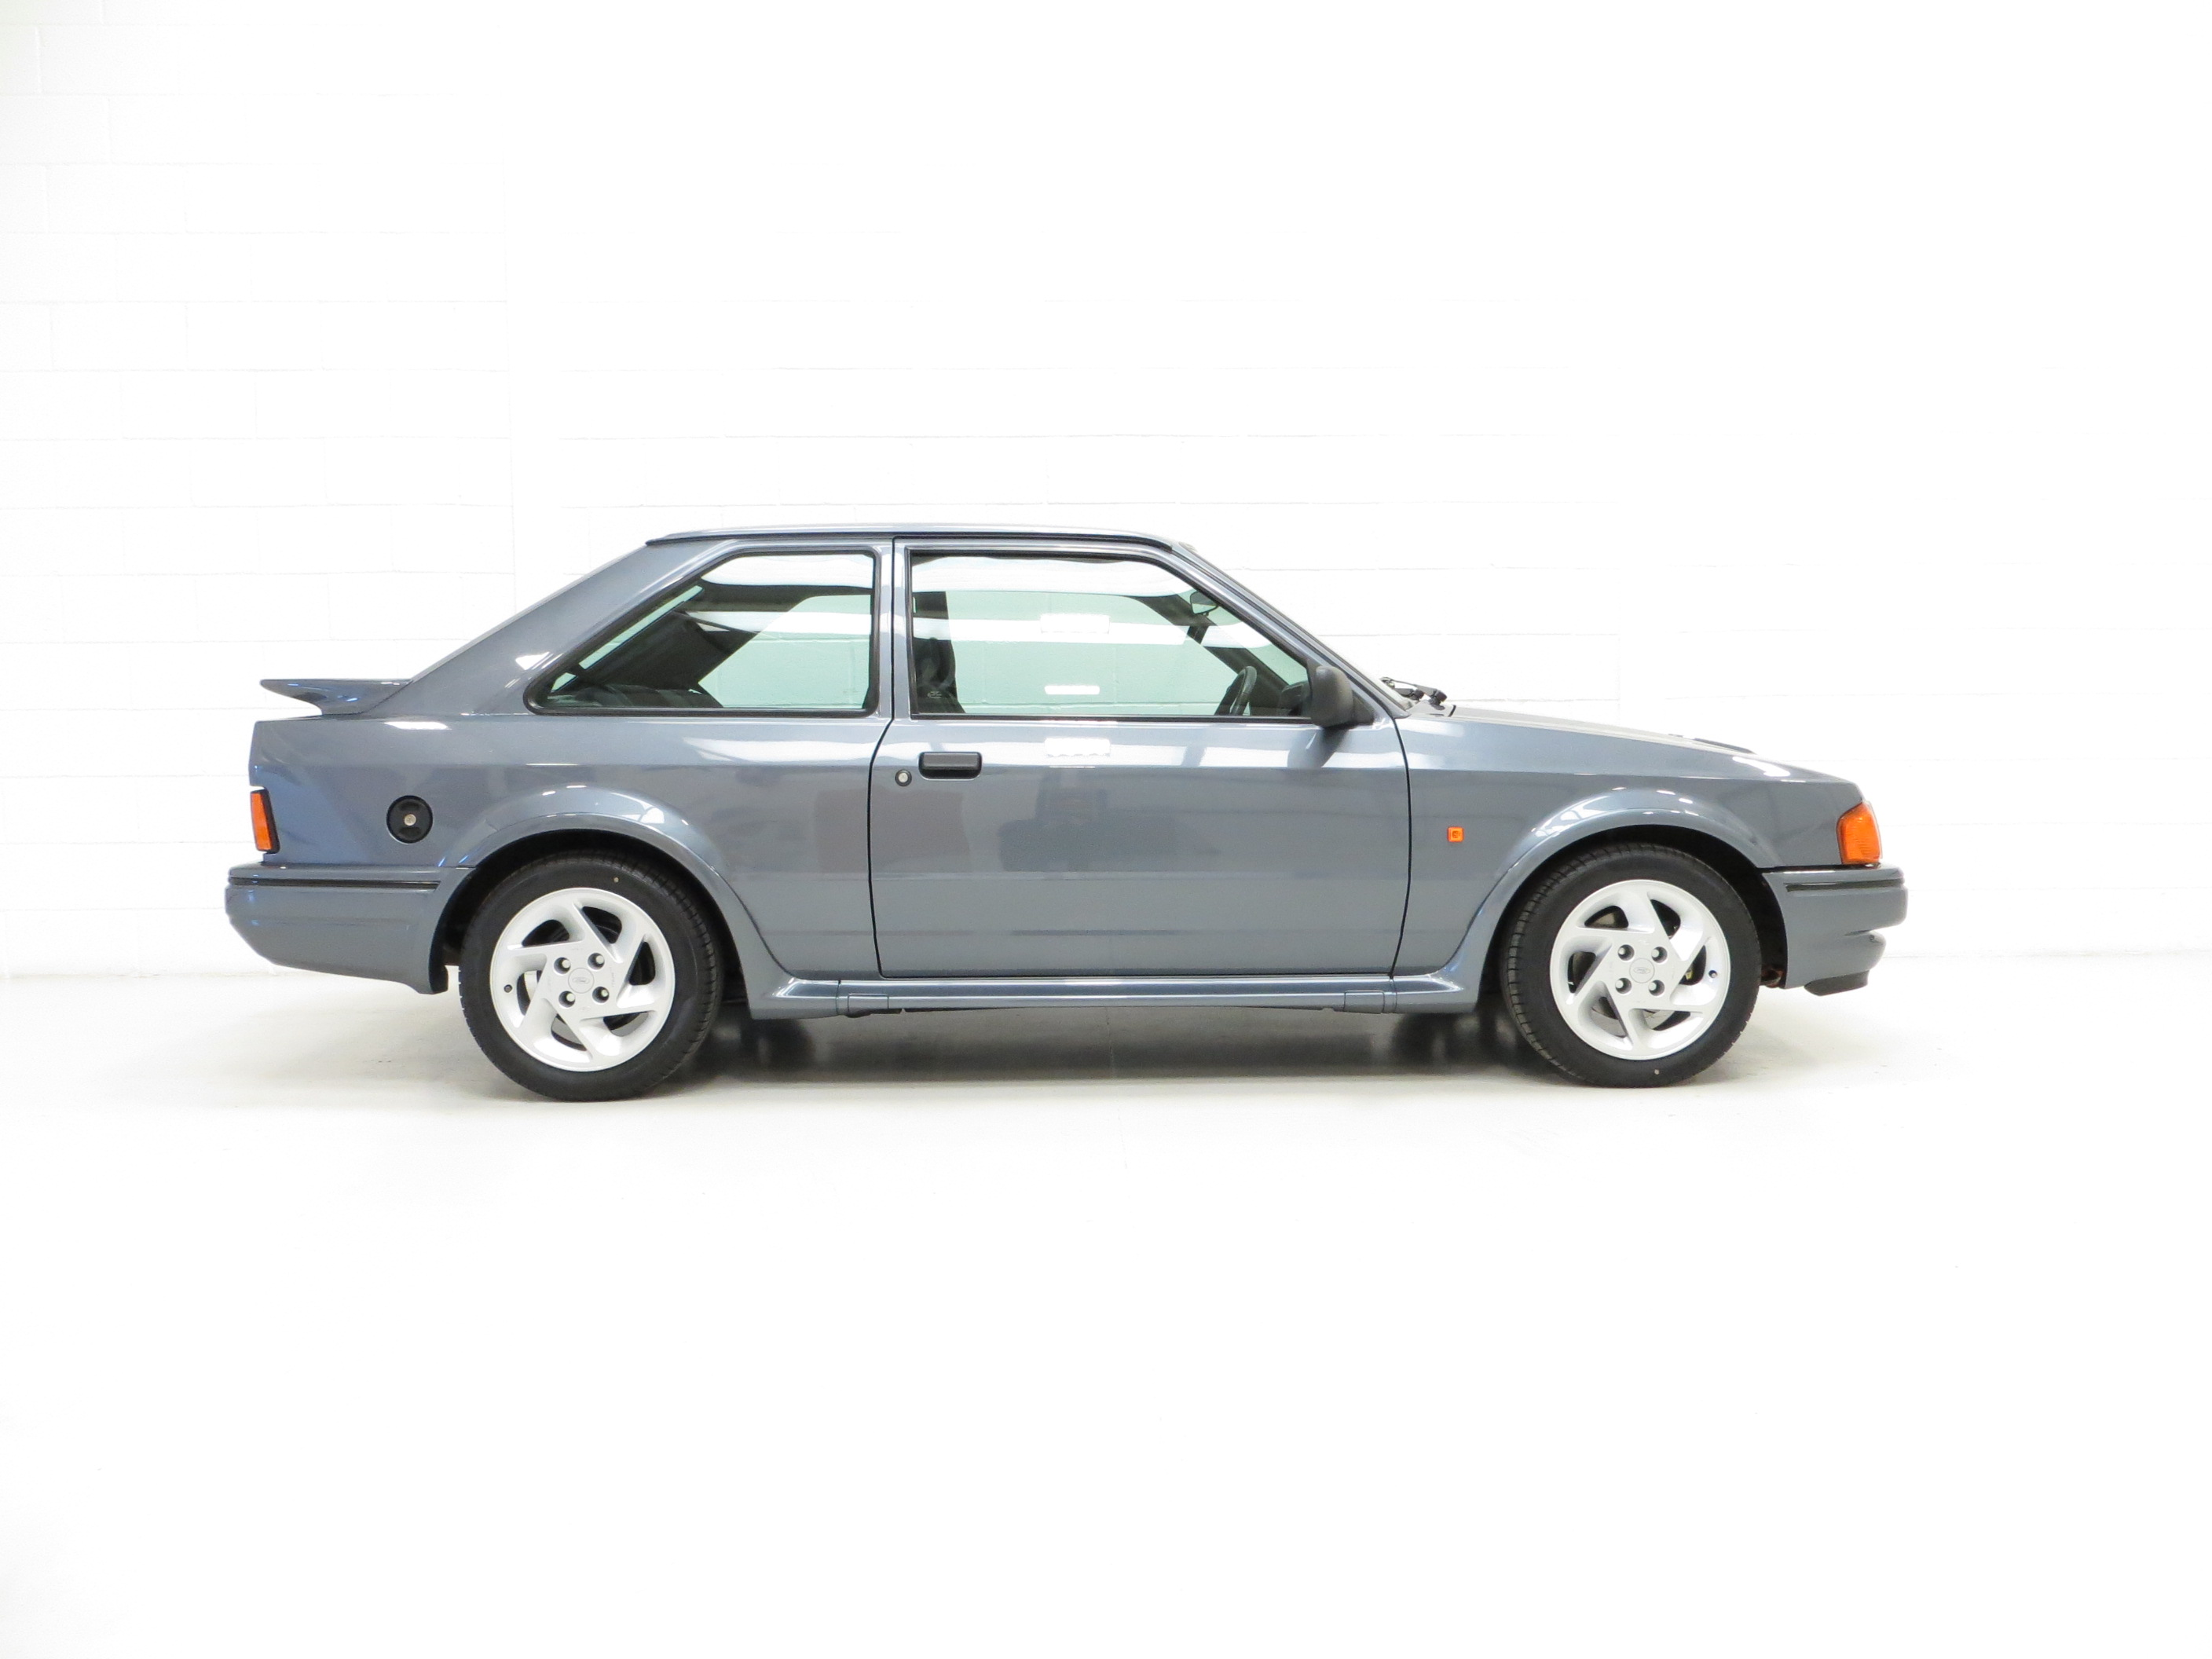 1987 Ford Escort RS Turbo Series 2 by KGF Classic Cars, on Flickr